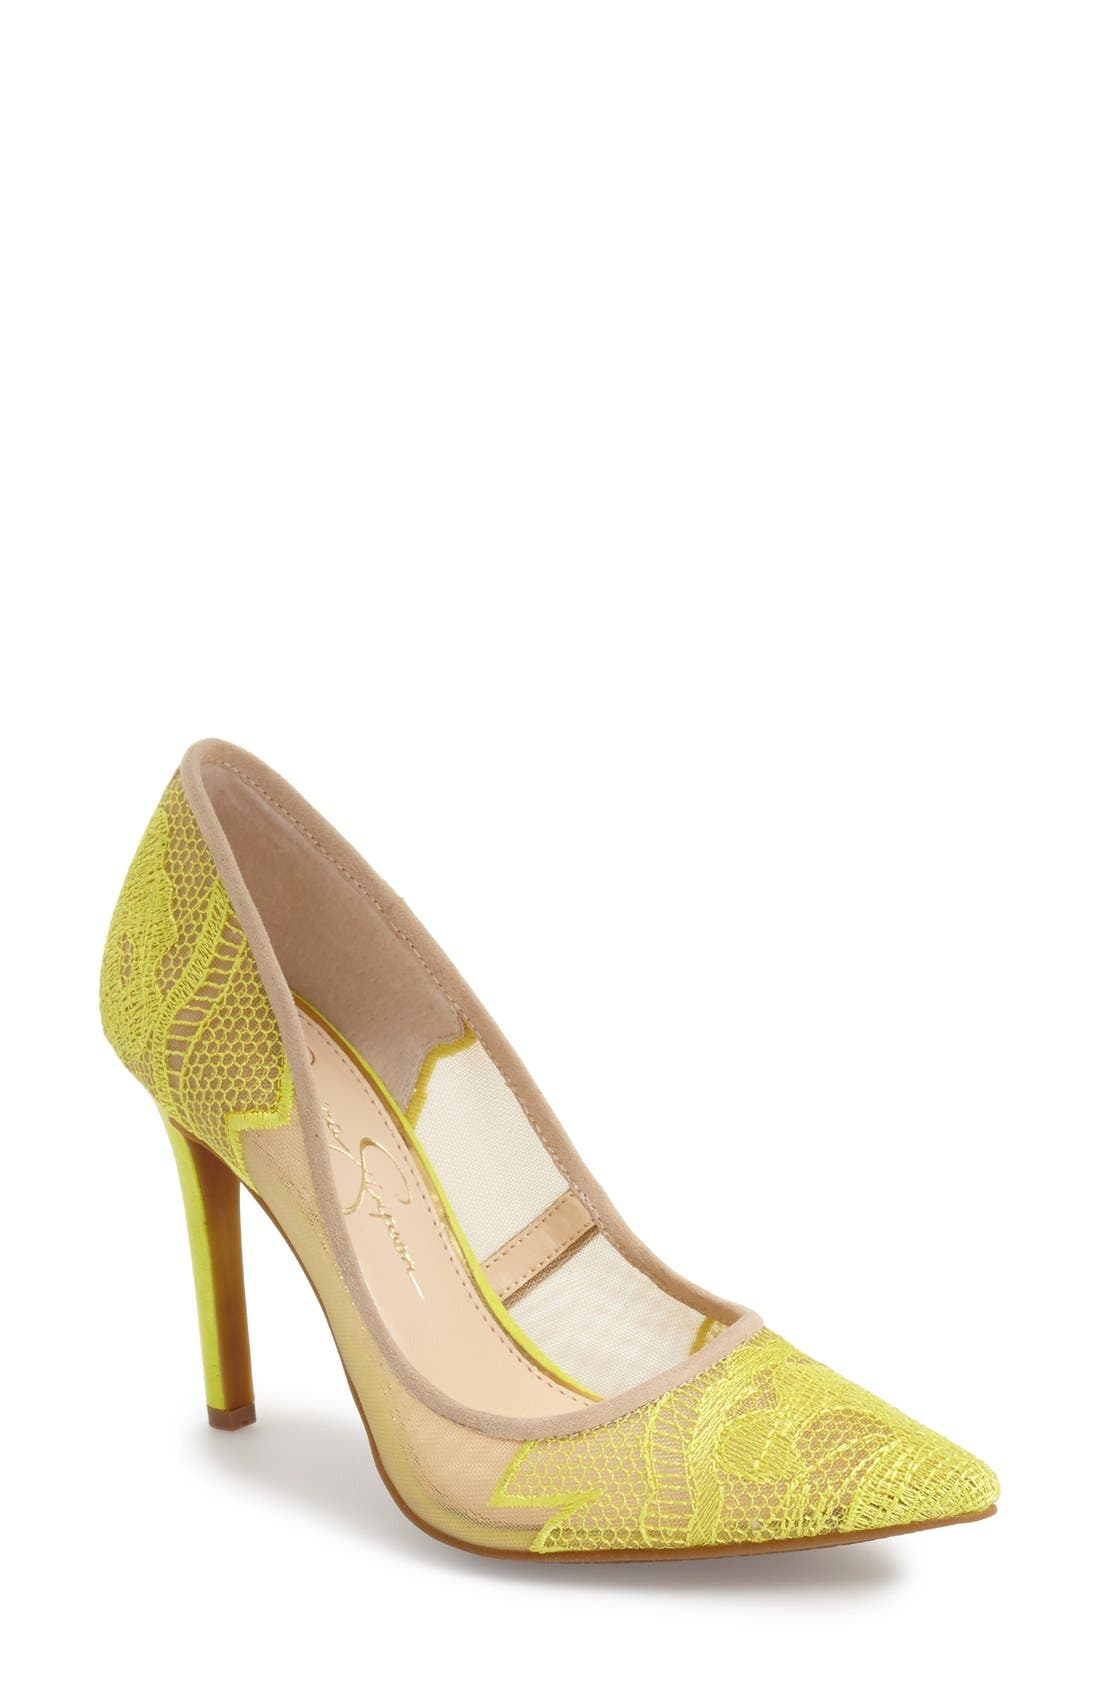 Alternate Image 1 Selected - Jessica Simpson 'Camba' Pointy Toe Pump (Women)